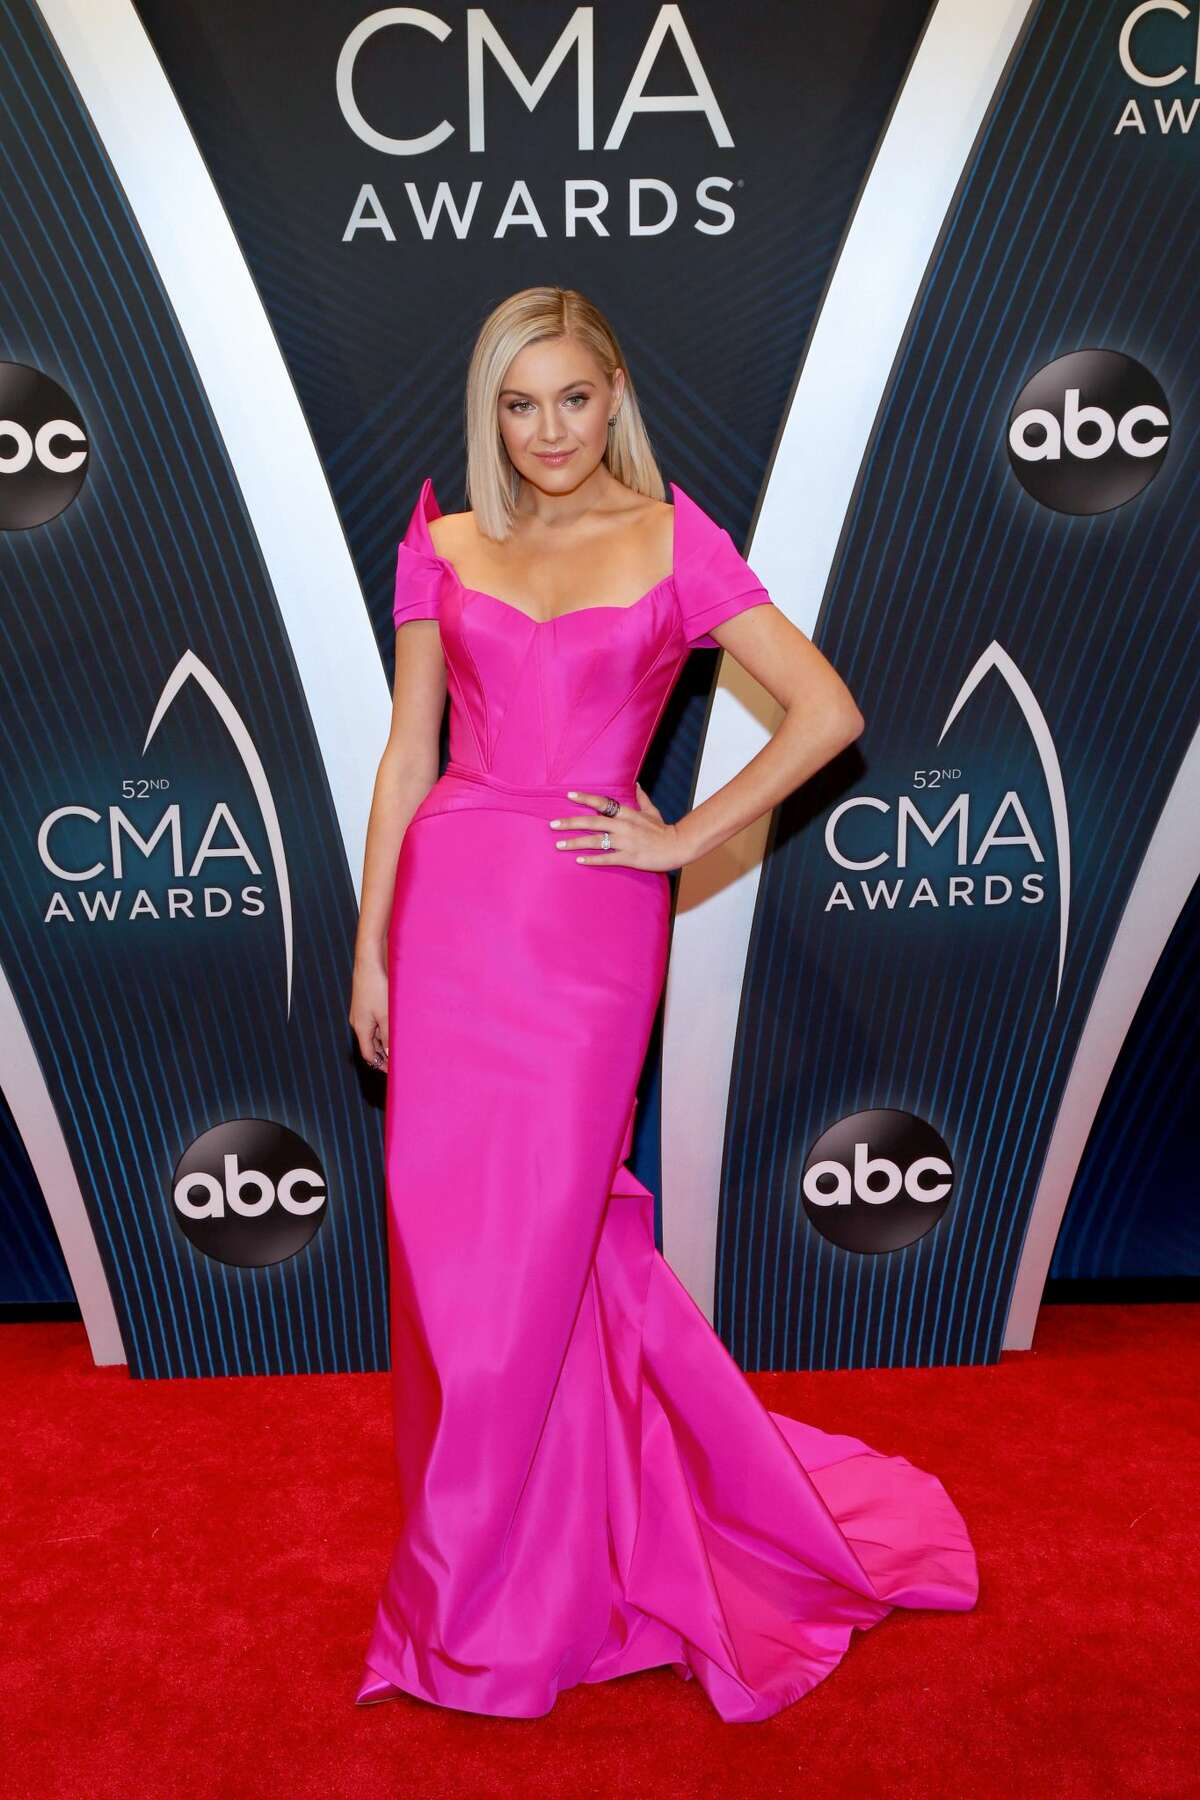 Singer-songwriter Kelsea Ballerini attends the 52nd annual CMA Awards at the Bridgestone Arena on November 14, 2018 in Nashville, Tennessee. (Photo by Terry Wyatt/FilmMagic)